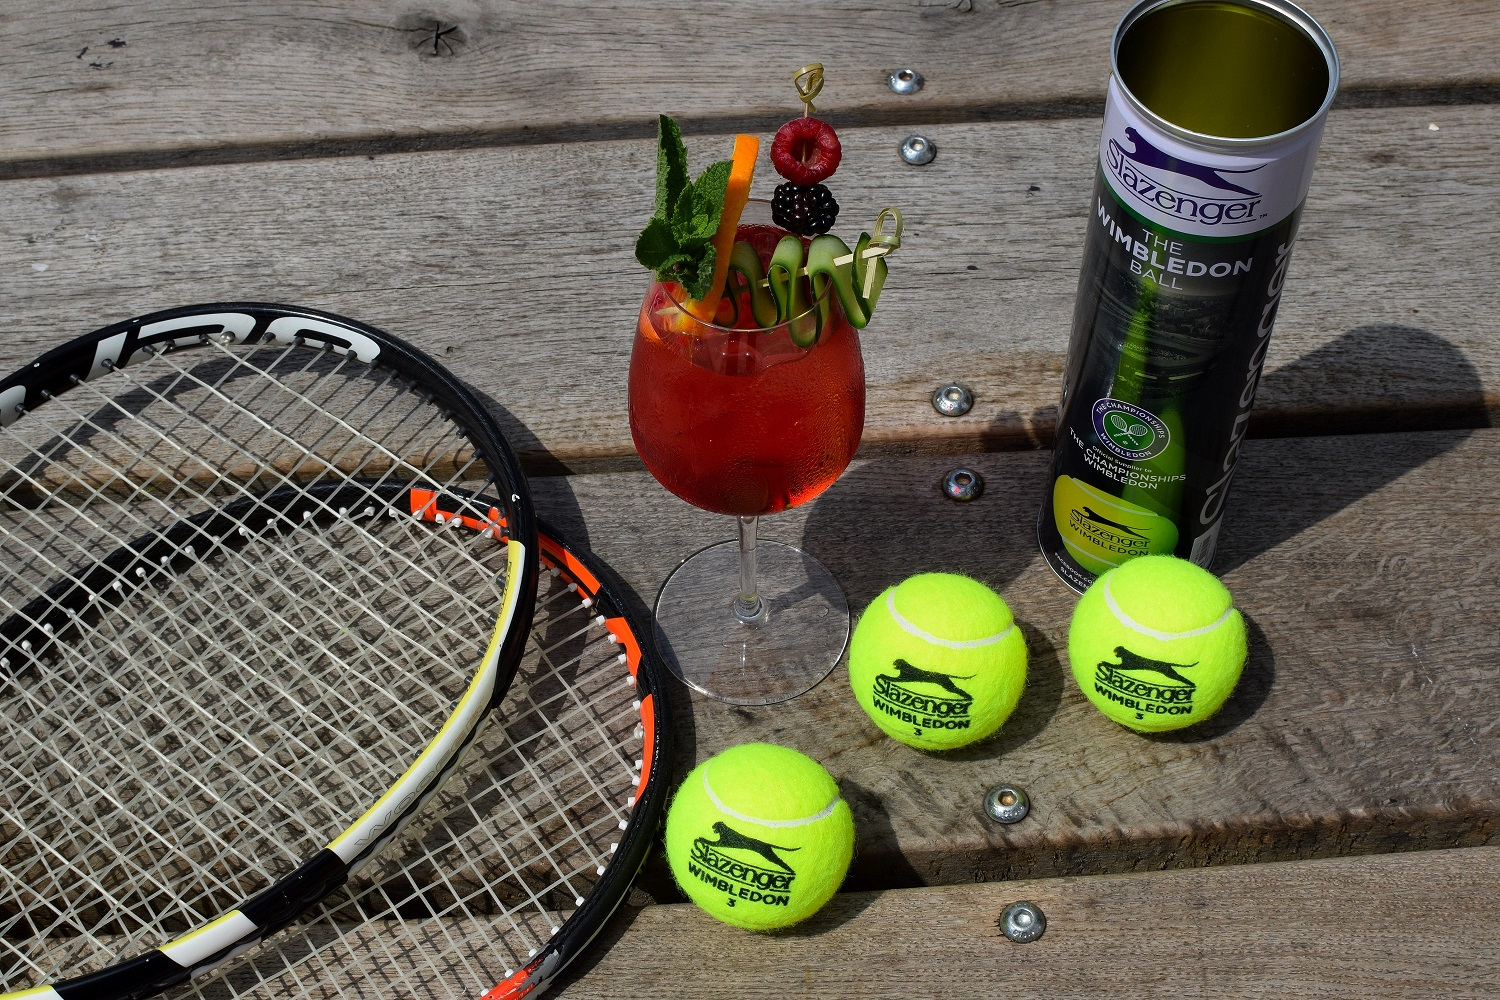 Wimbledon Cocktail and Tennis Rackets and Balls 3